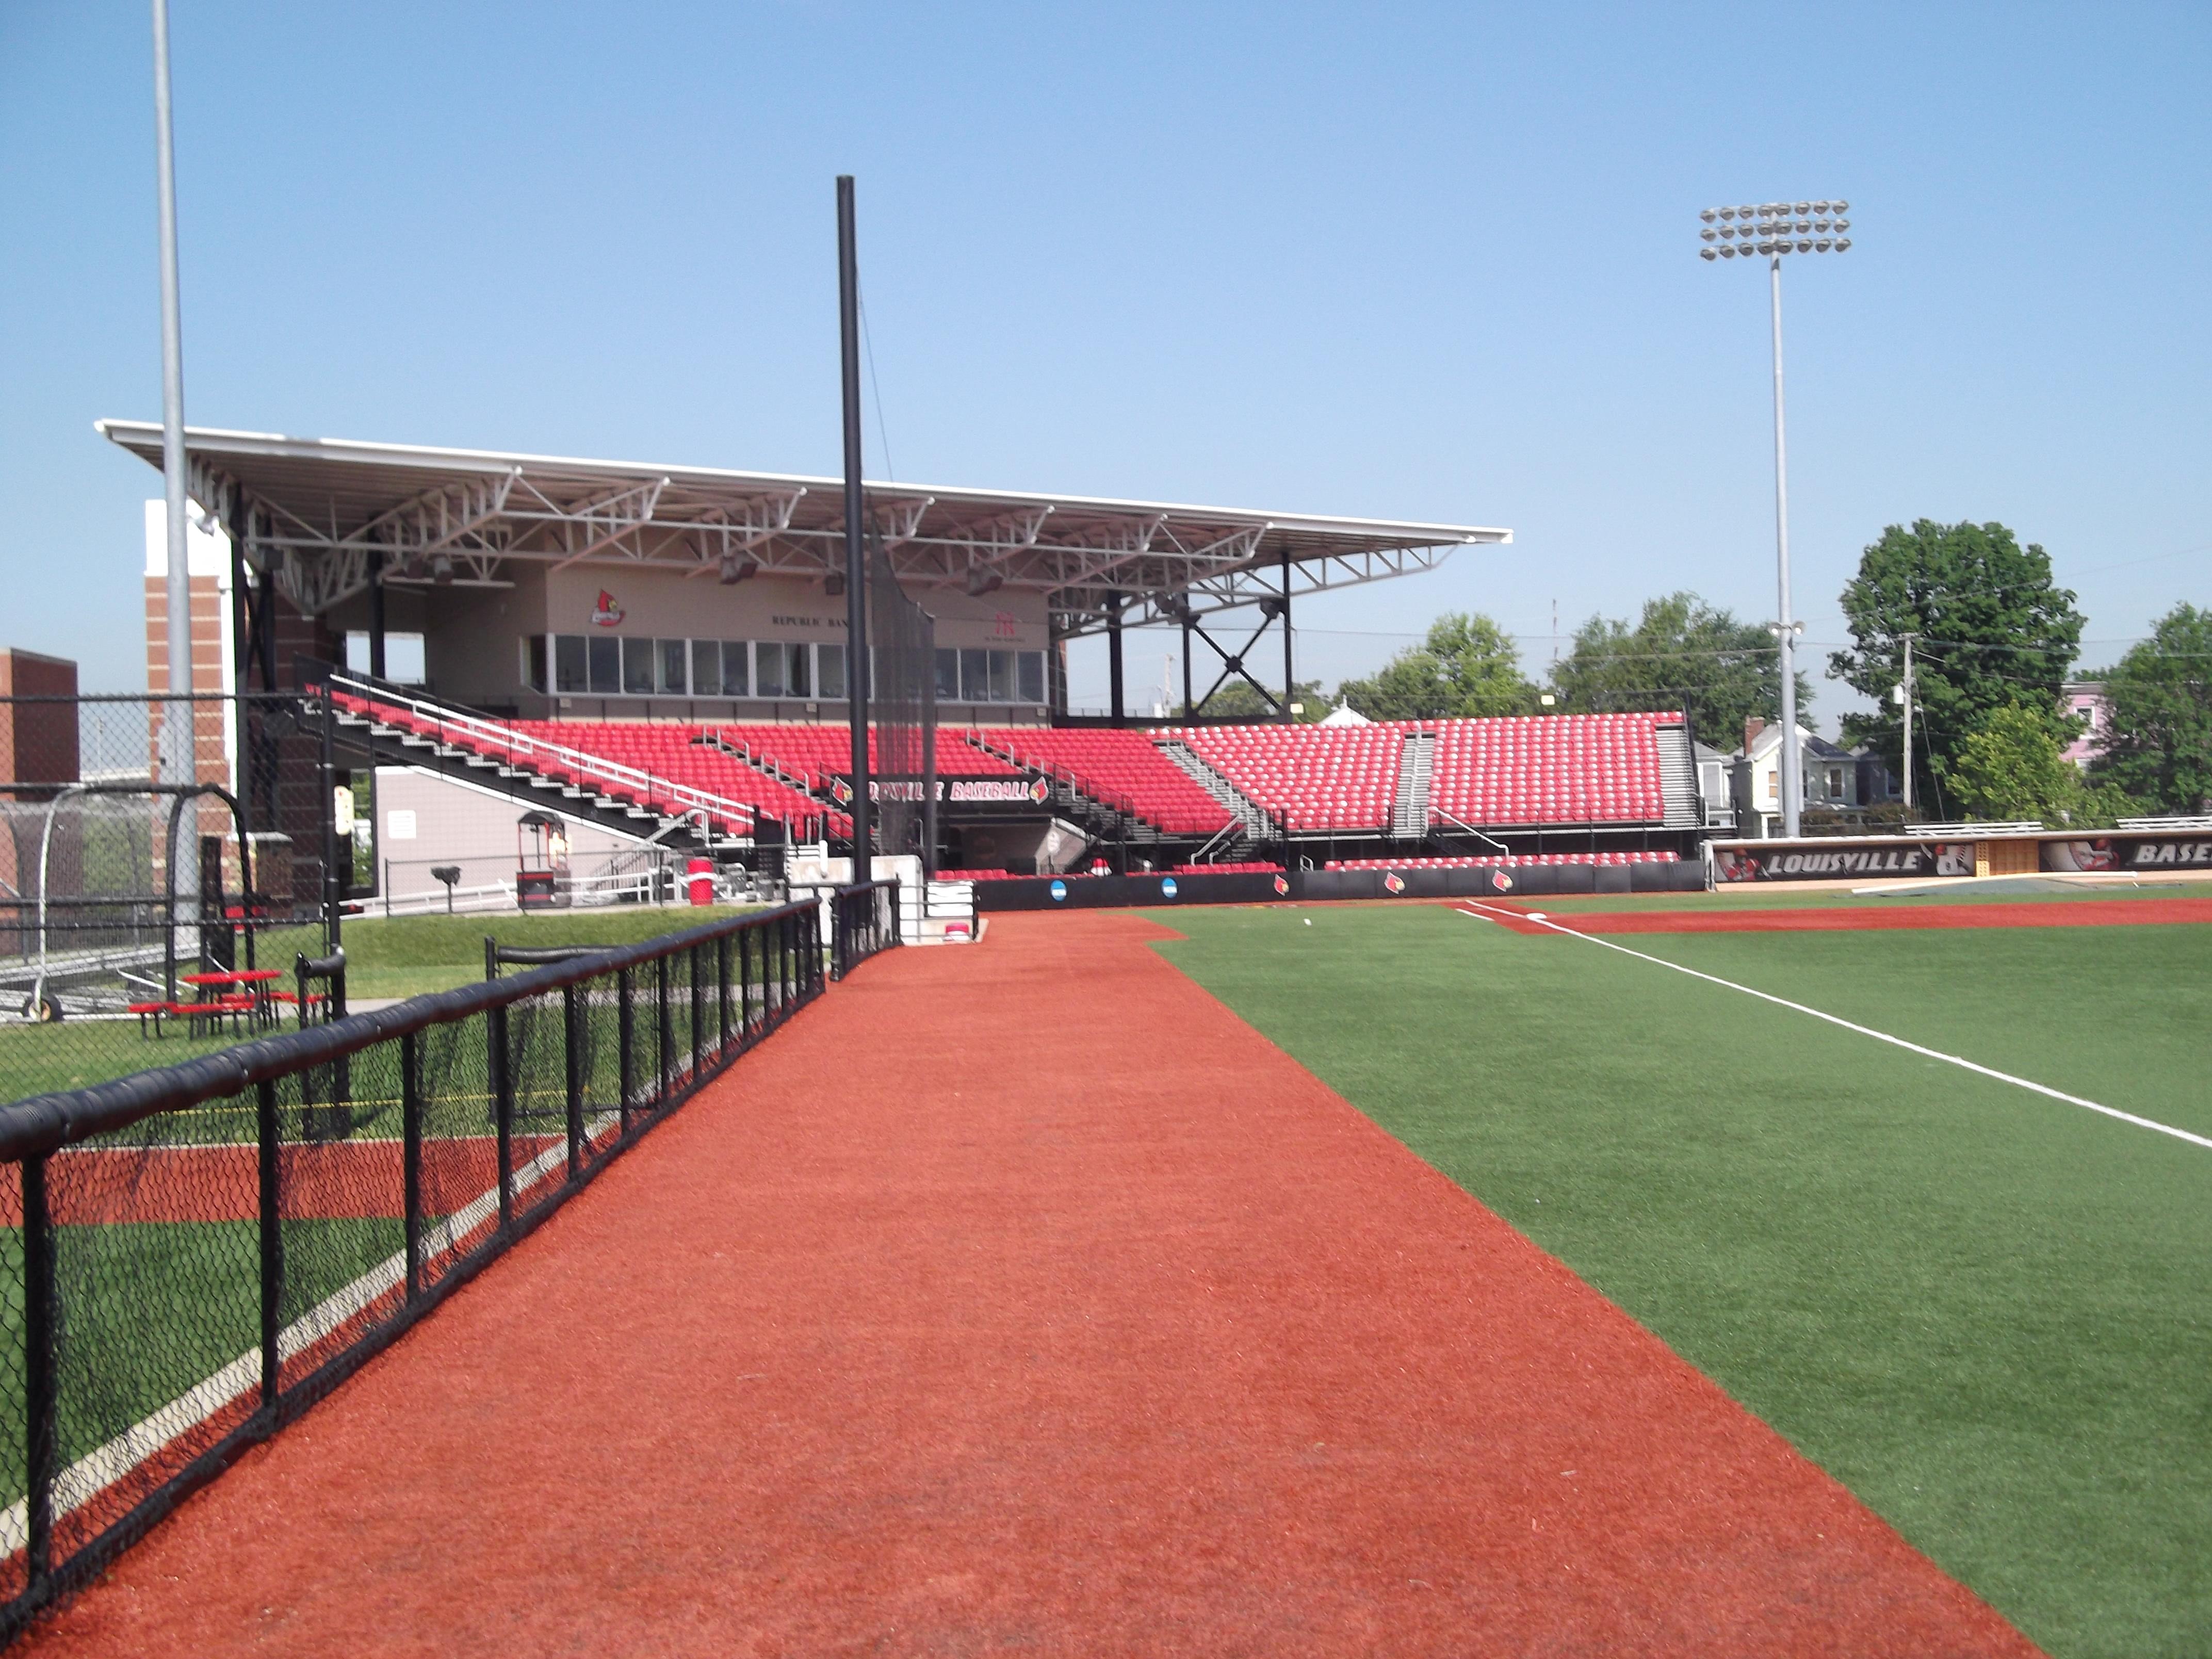 Uofl Patterson Field 002 Professional Fence Co